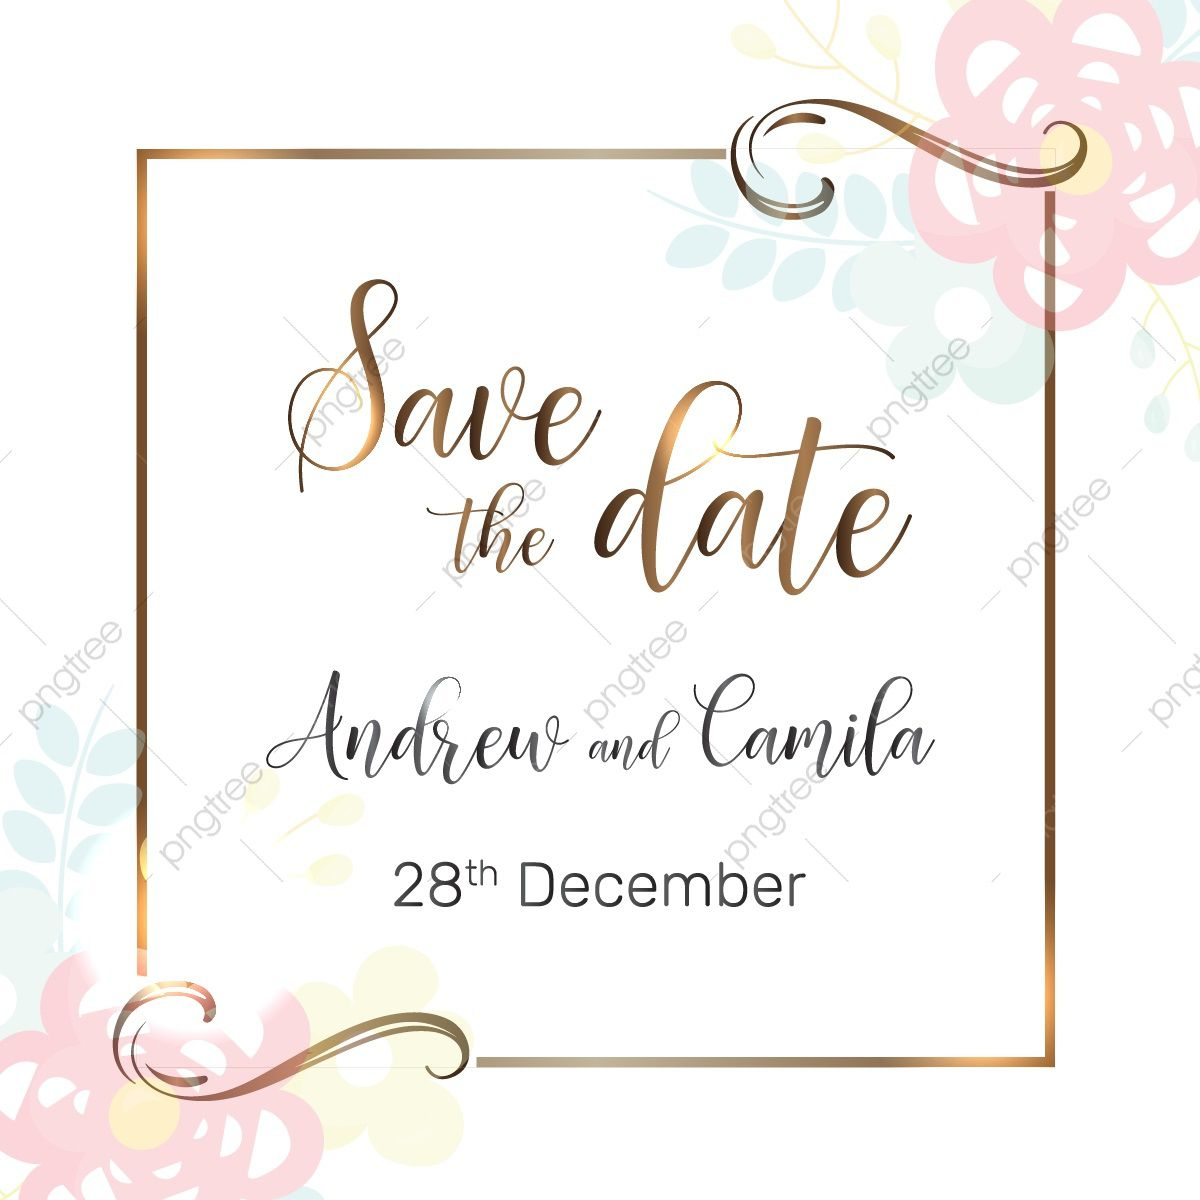 005 Unbelievable Save The Date Template Photoshop Inspiration  Adobe CardFull